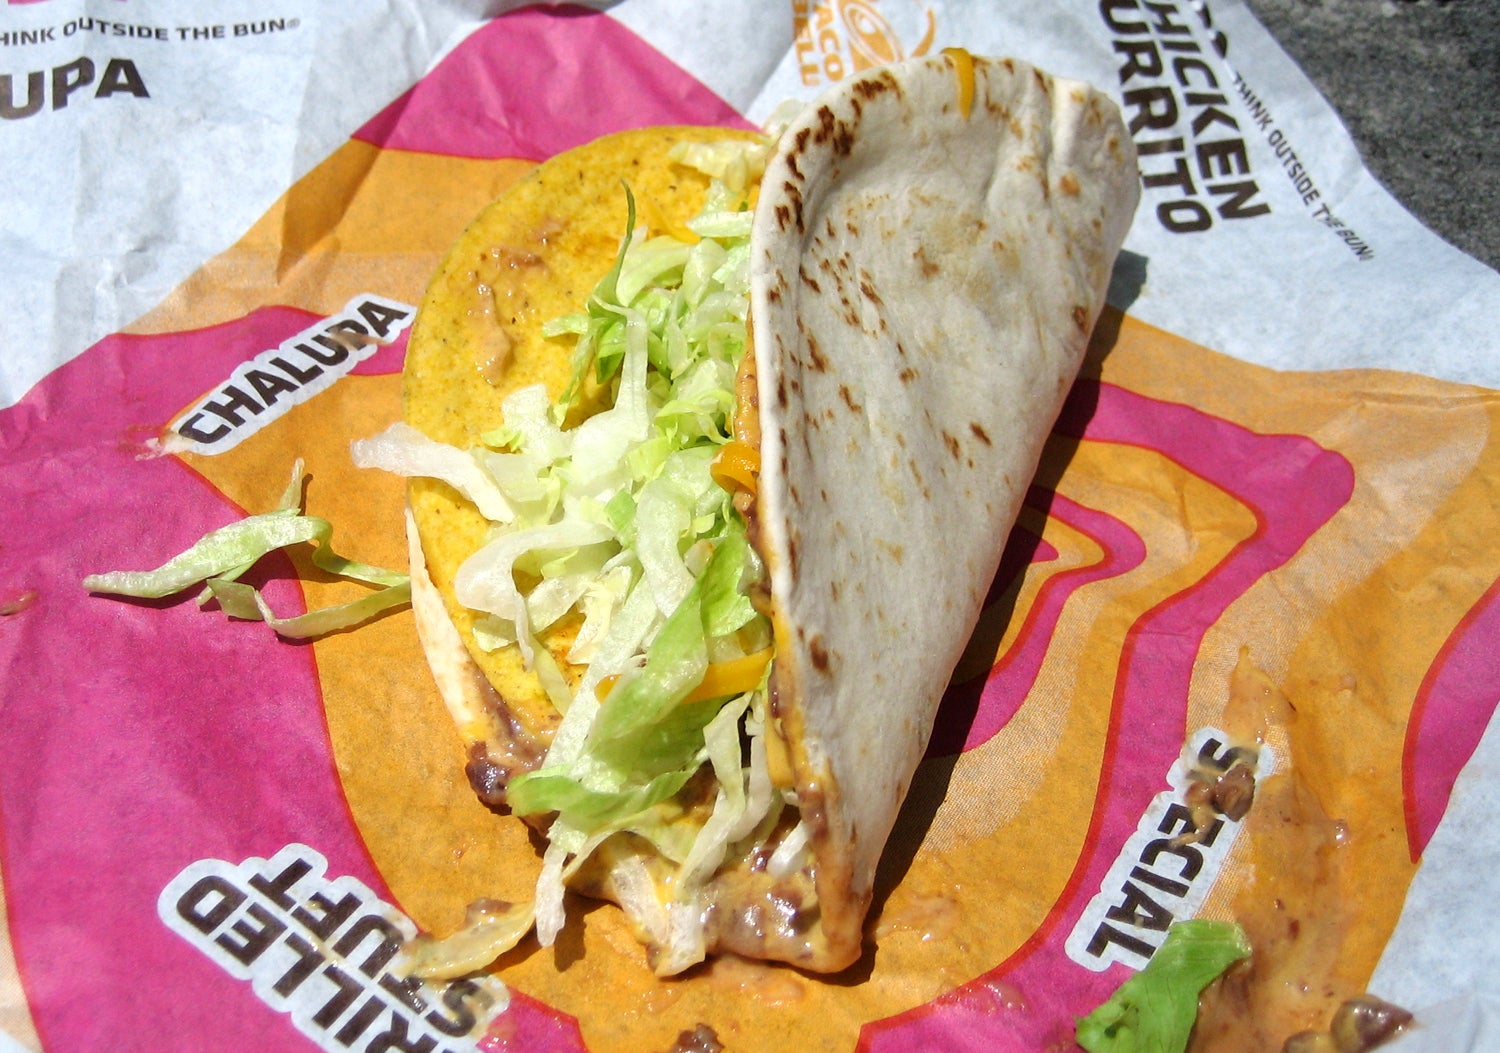 Weekend Reading: Taco Bell, The End of Avocados, Eating Acorns, and More